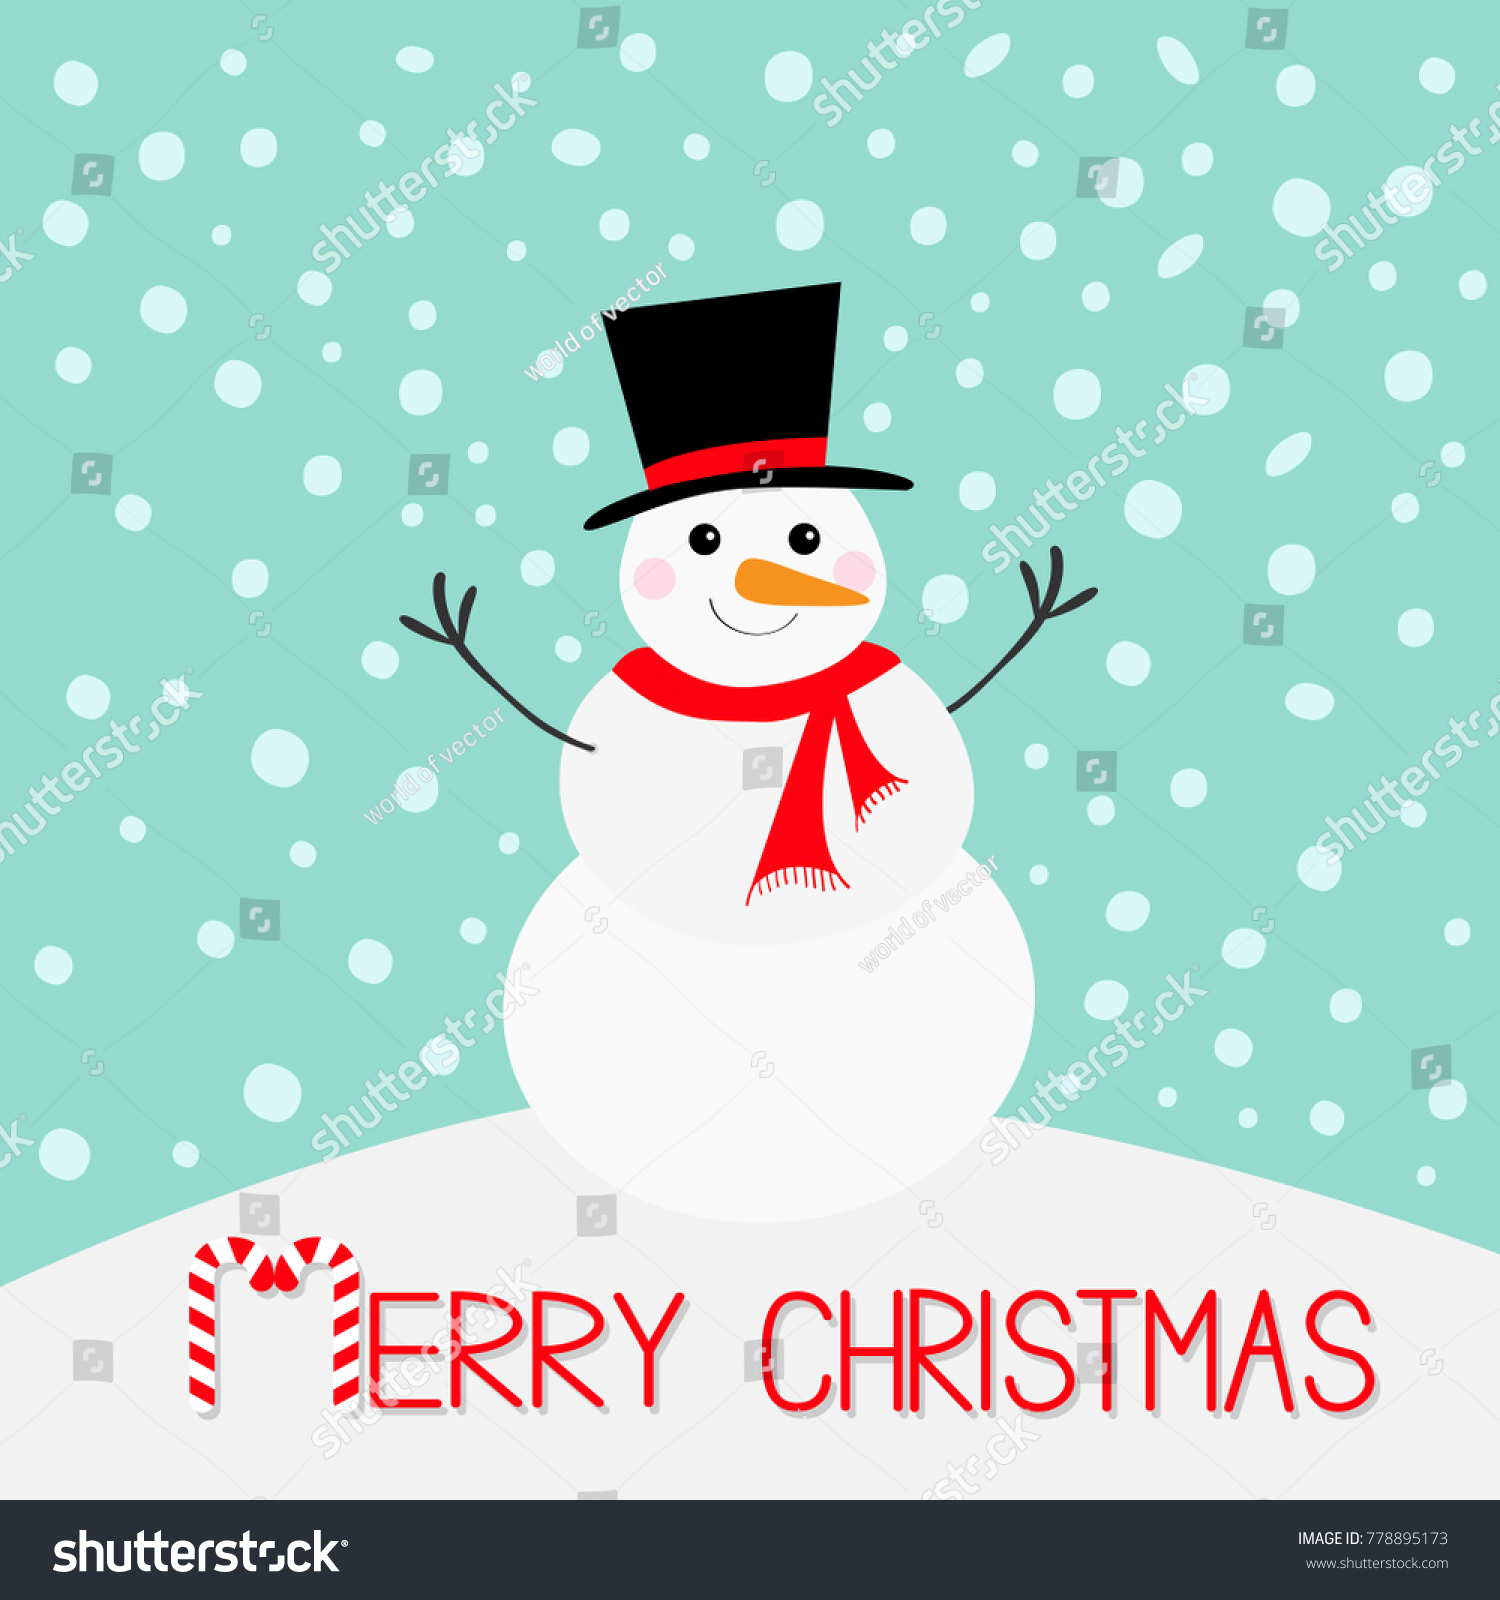 Merry Christmas. Snowman, carrot nose, hat, red scarf and snowflakes ...